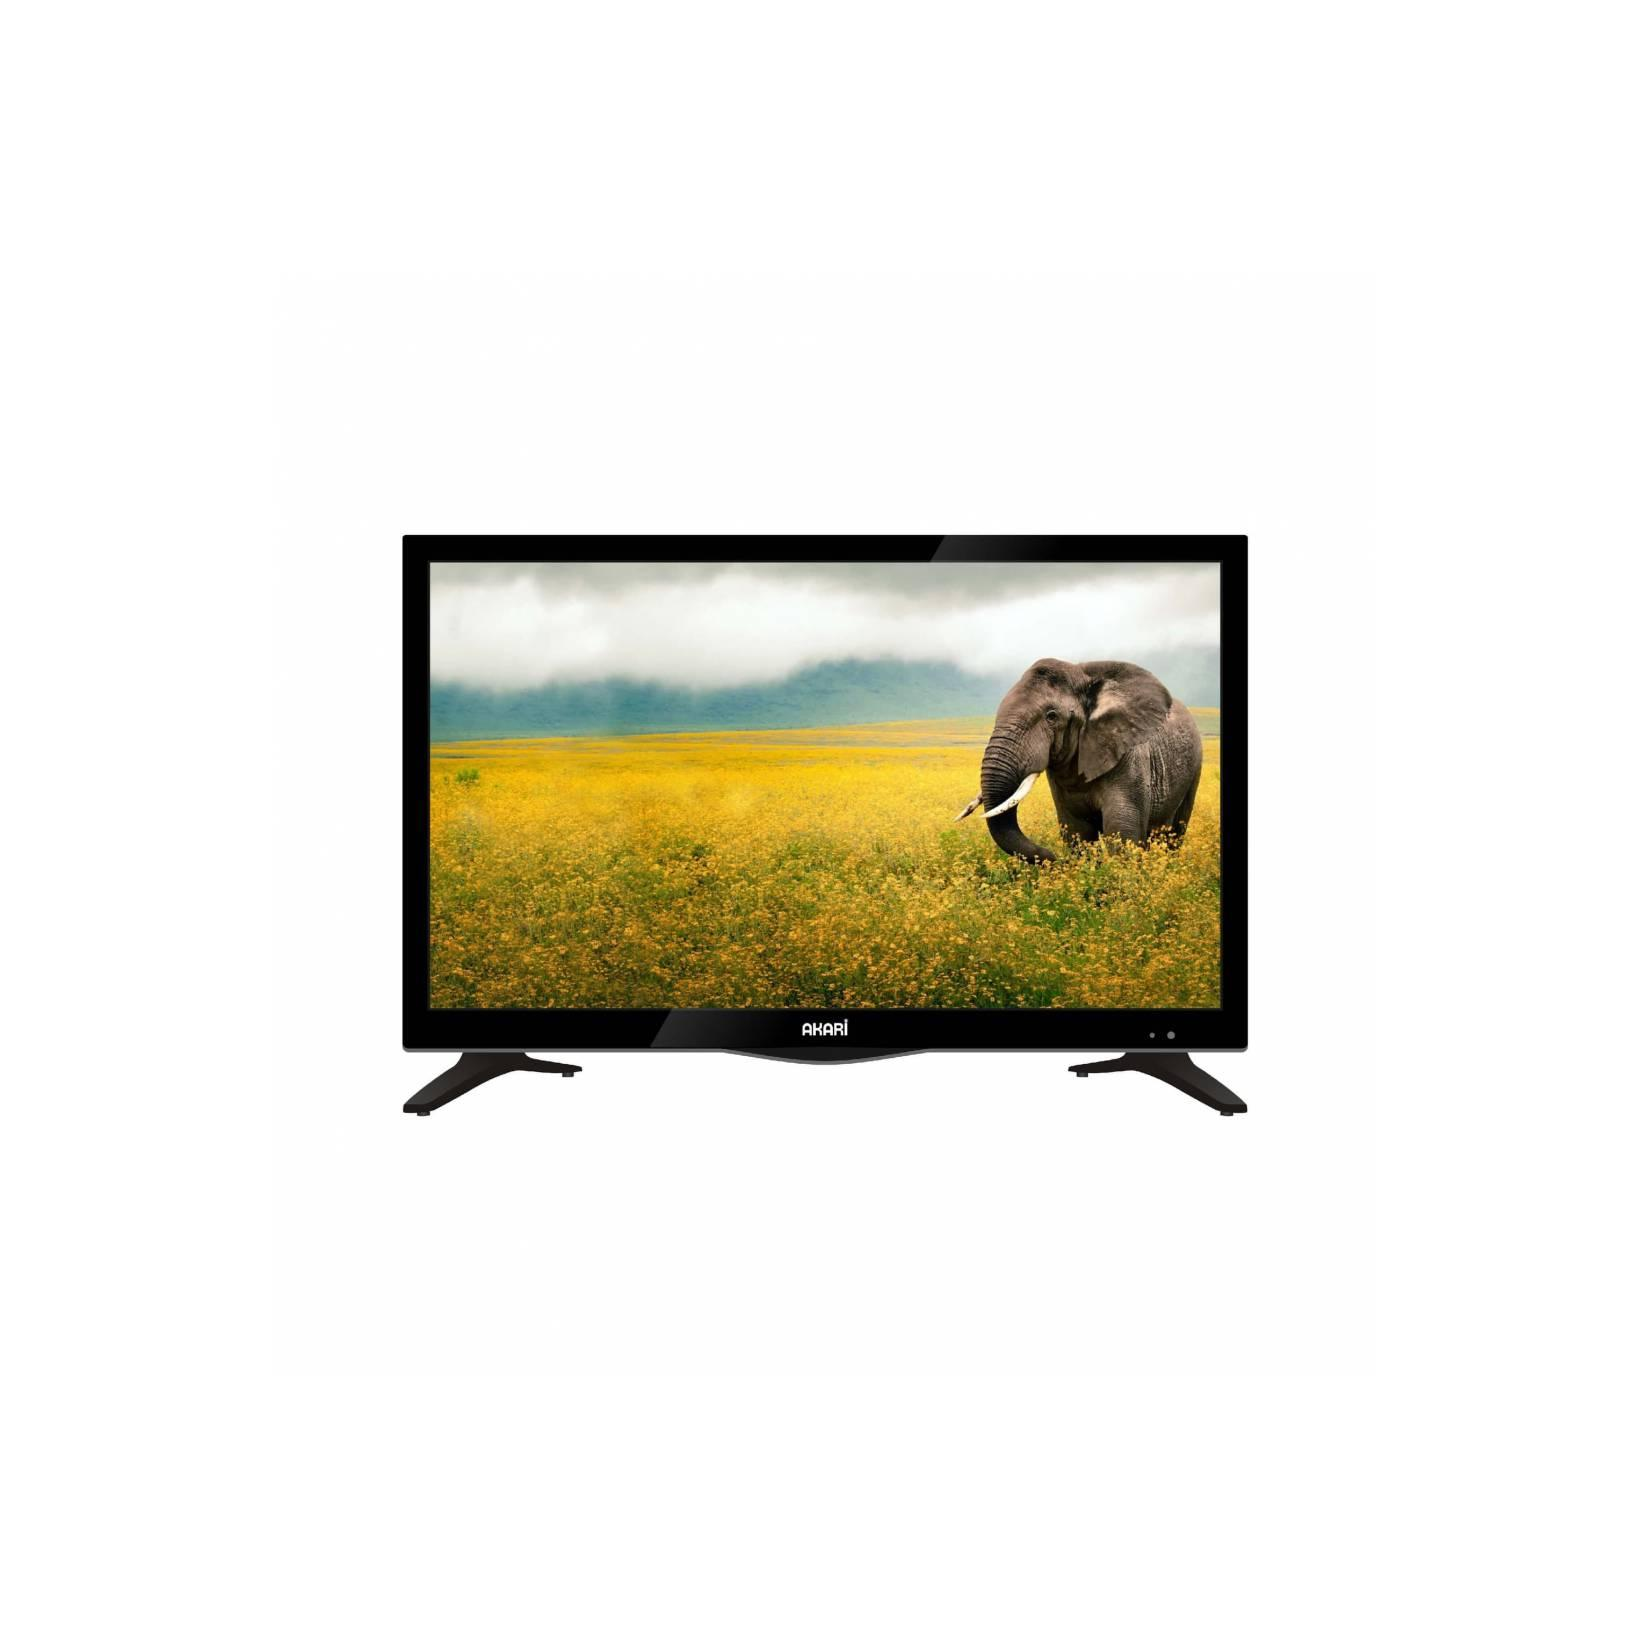 AKARI MAGNETO LE-29P57 TV LED [29 Inch/HD Ready/USB Movie] +BRACKET